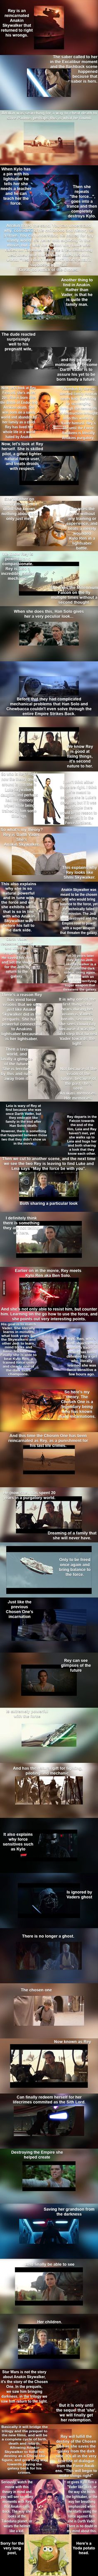 Rey is a reincarnated Anakin Skywalker that returned to right his wrongs.